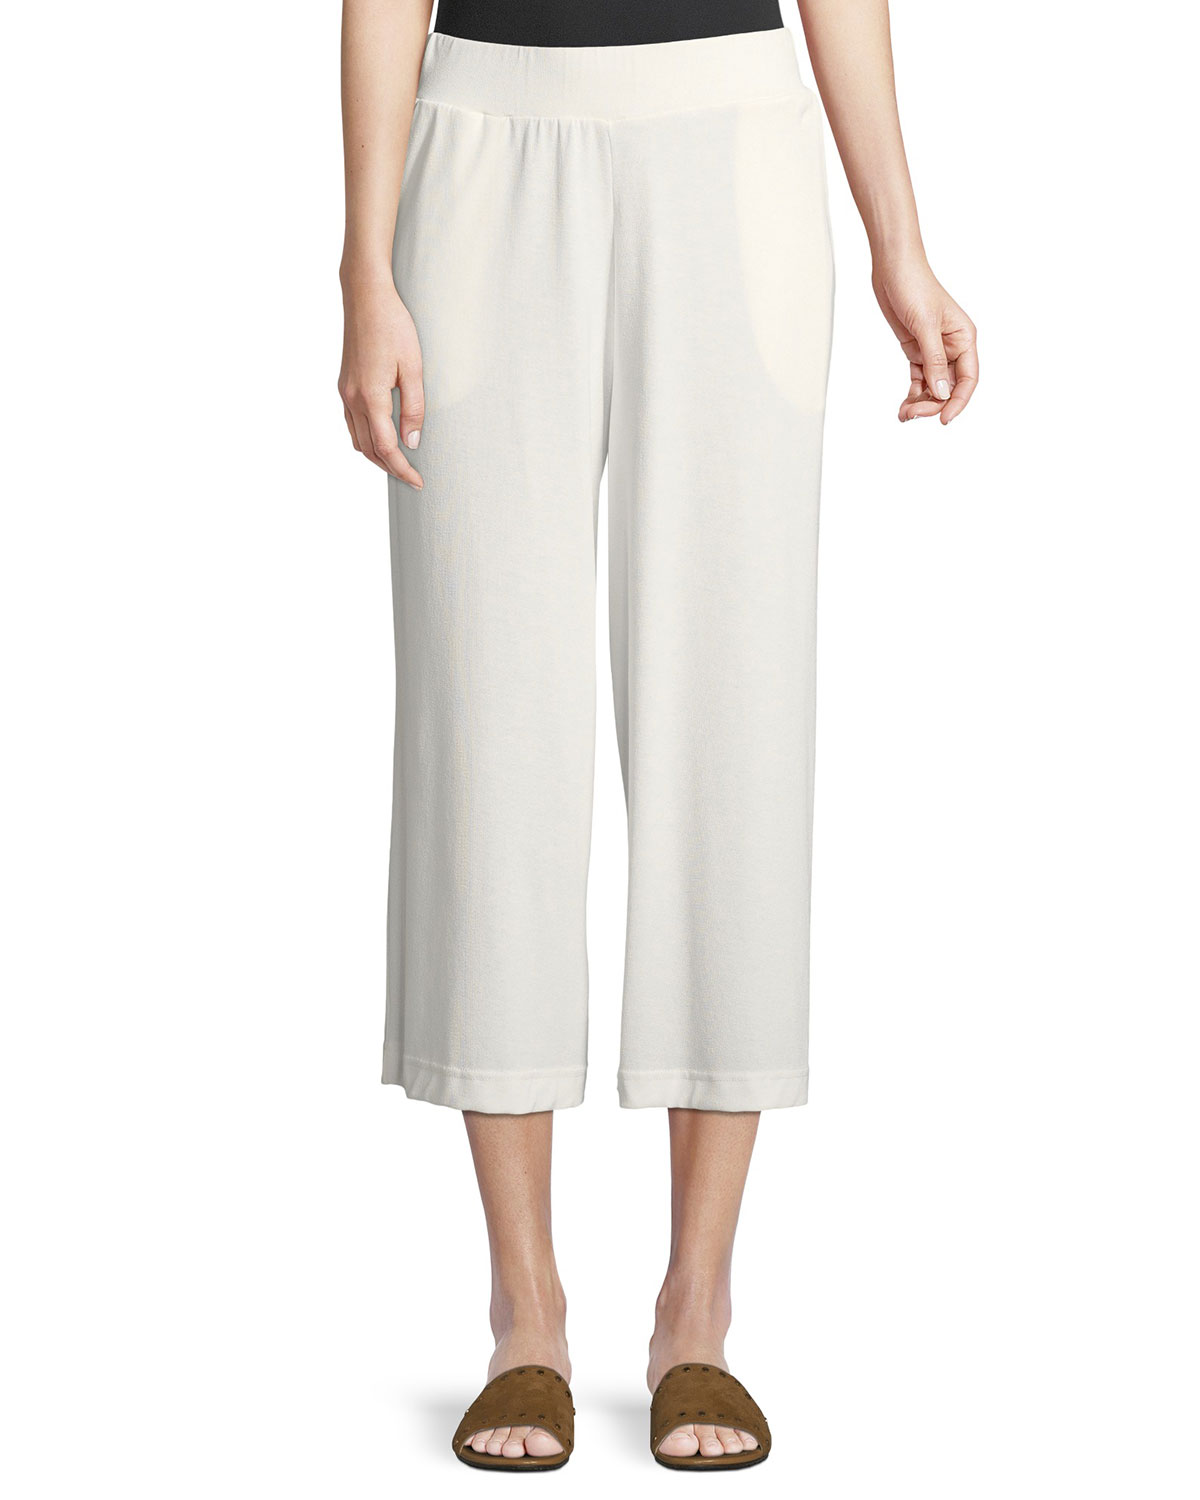 Patricia Jersey Culotte Pants